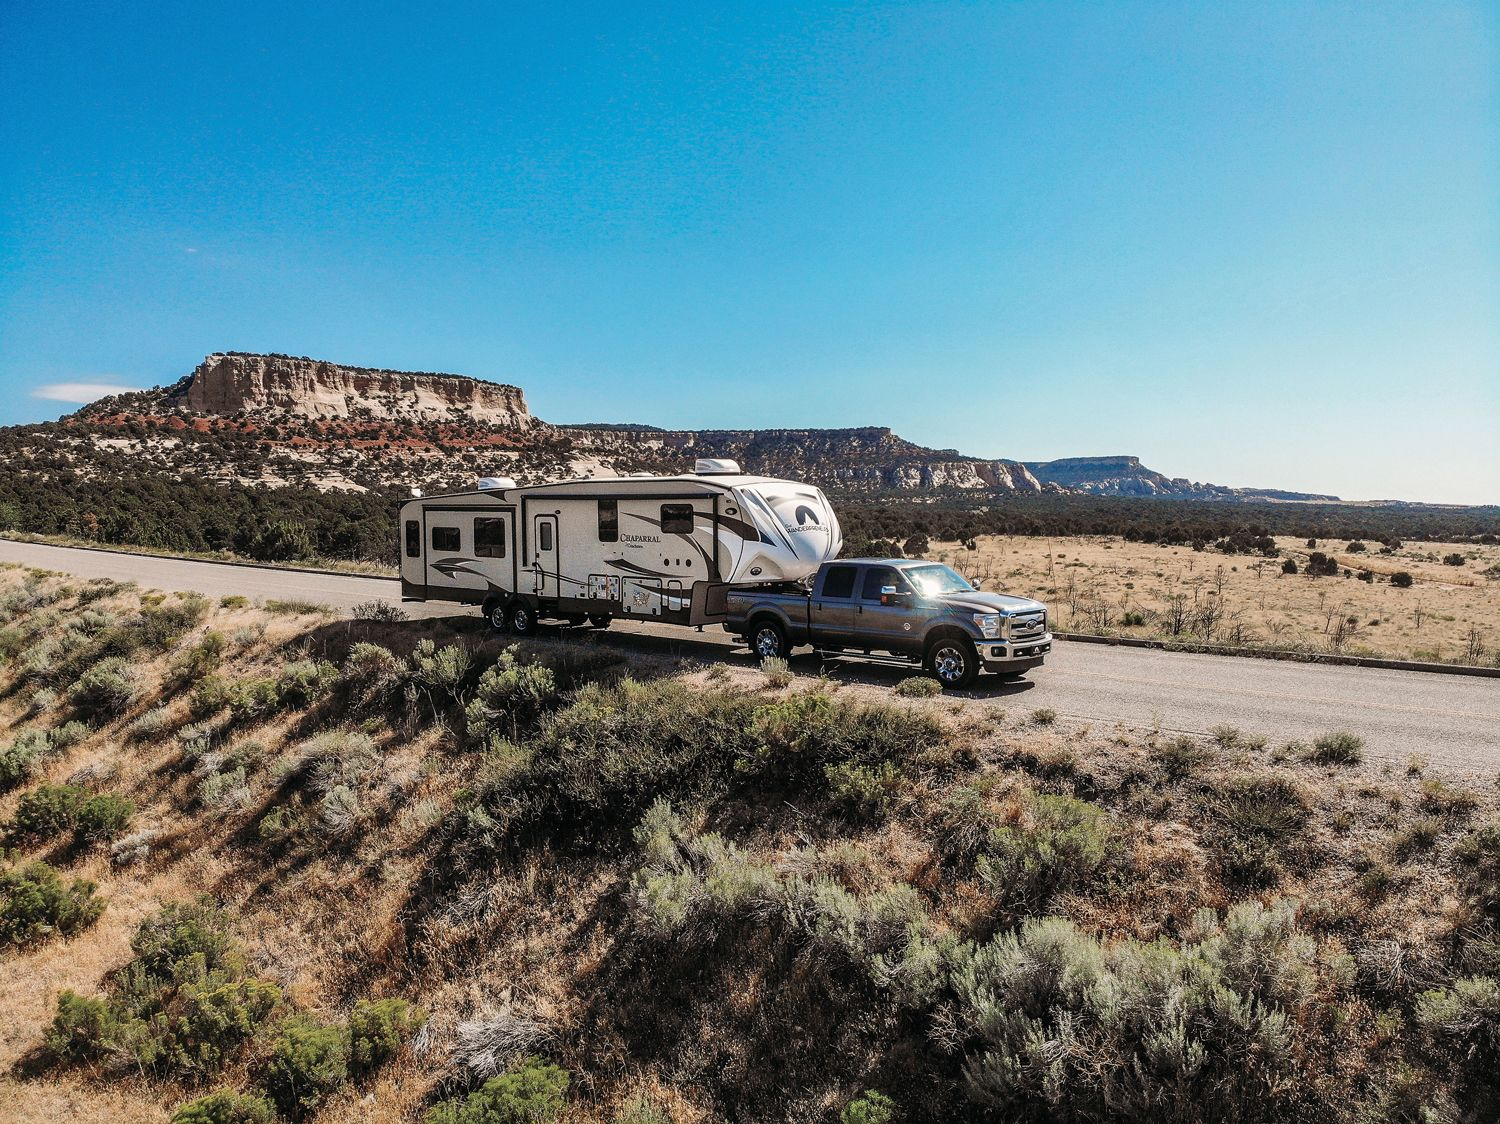 An RVshare travel trailer being towed on the open road. RVshare says bookings on its peer-to-peer rental marketplace have surged 650% since early April. (Courtesy of RVshare)